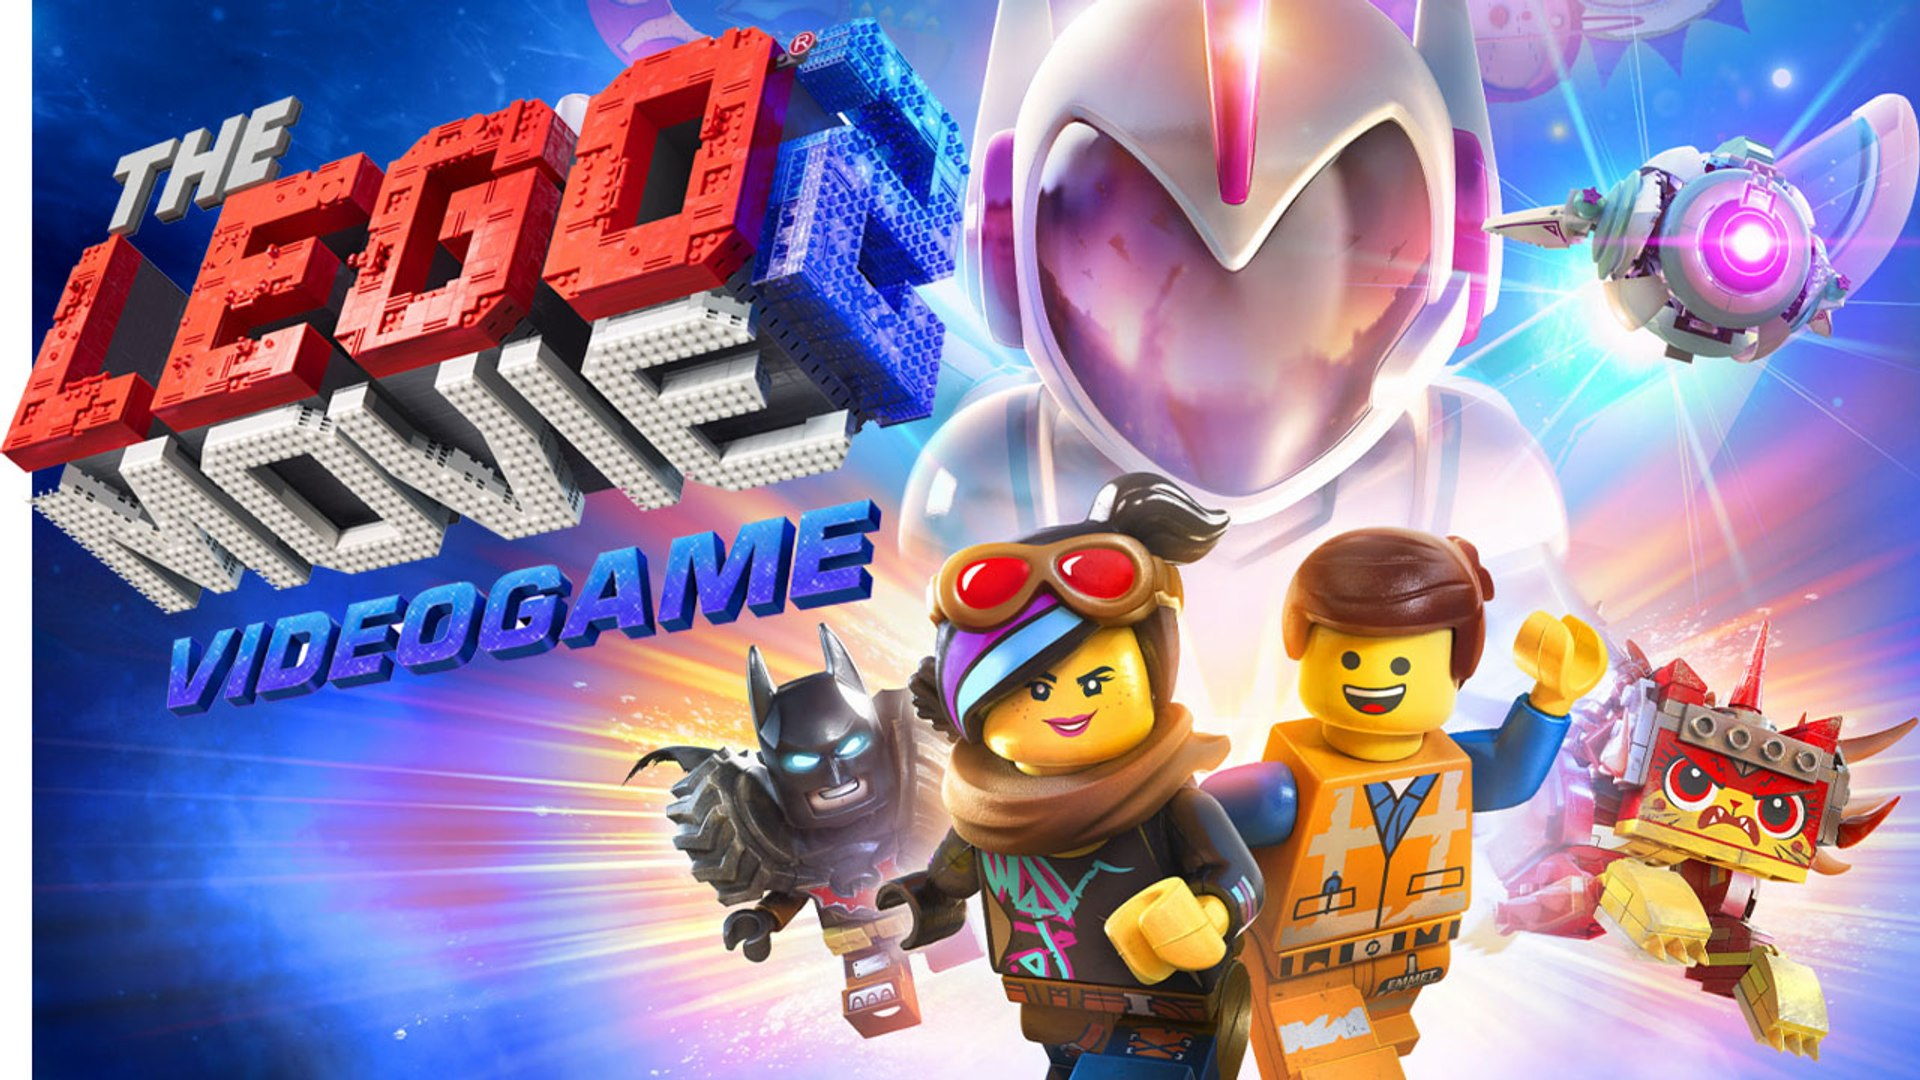 The Lego Movie 2 Videogame Walkthrough Part 2 Syspocalystar Story 60 Fps Pc Ultra Settings Video Dailymotion